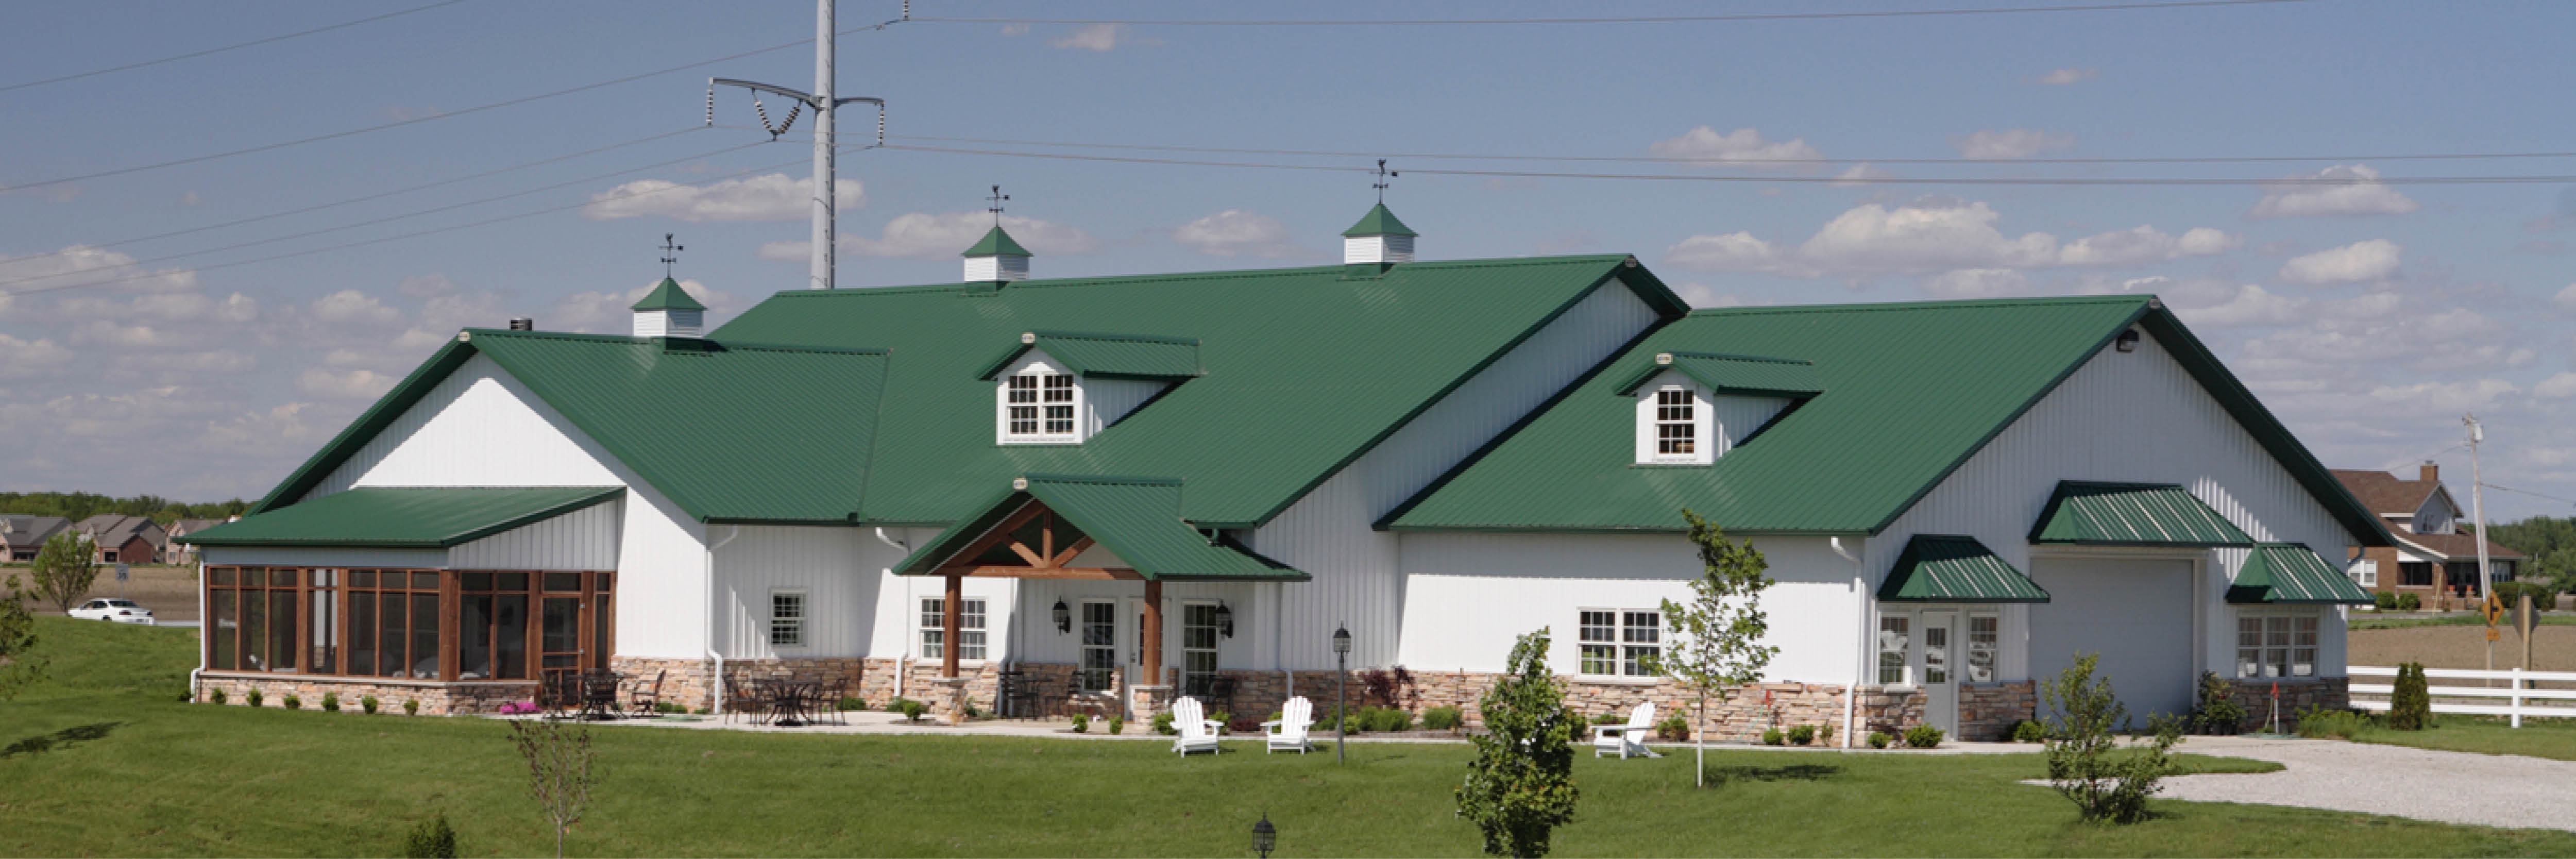 Who Builds Pole Barn Homes in Illinois?